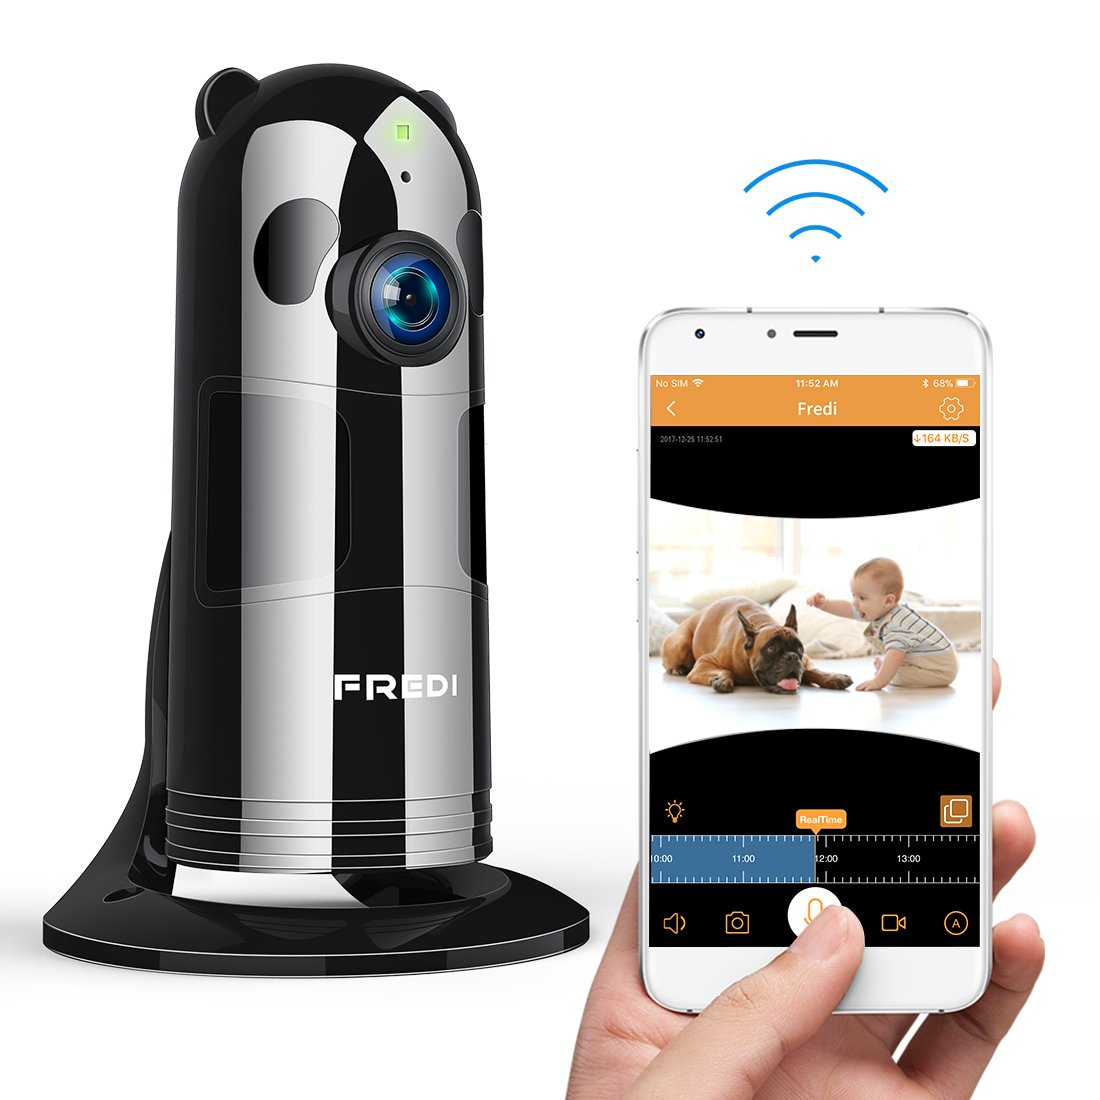 Wireless Baby Monitor Camera,1080P WiFi Security Camera IP Indoor Home Camera with app for Phone,with Night Vision,Two Way Talk,Motion Activated,Cloud Storage,for Pet/Baby/Elder/Nanny Cam